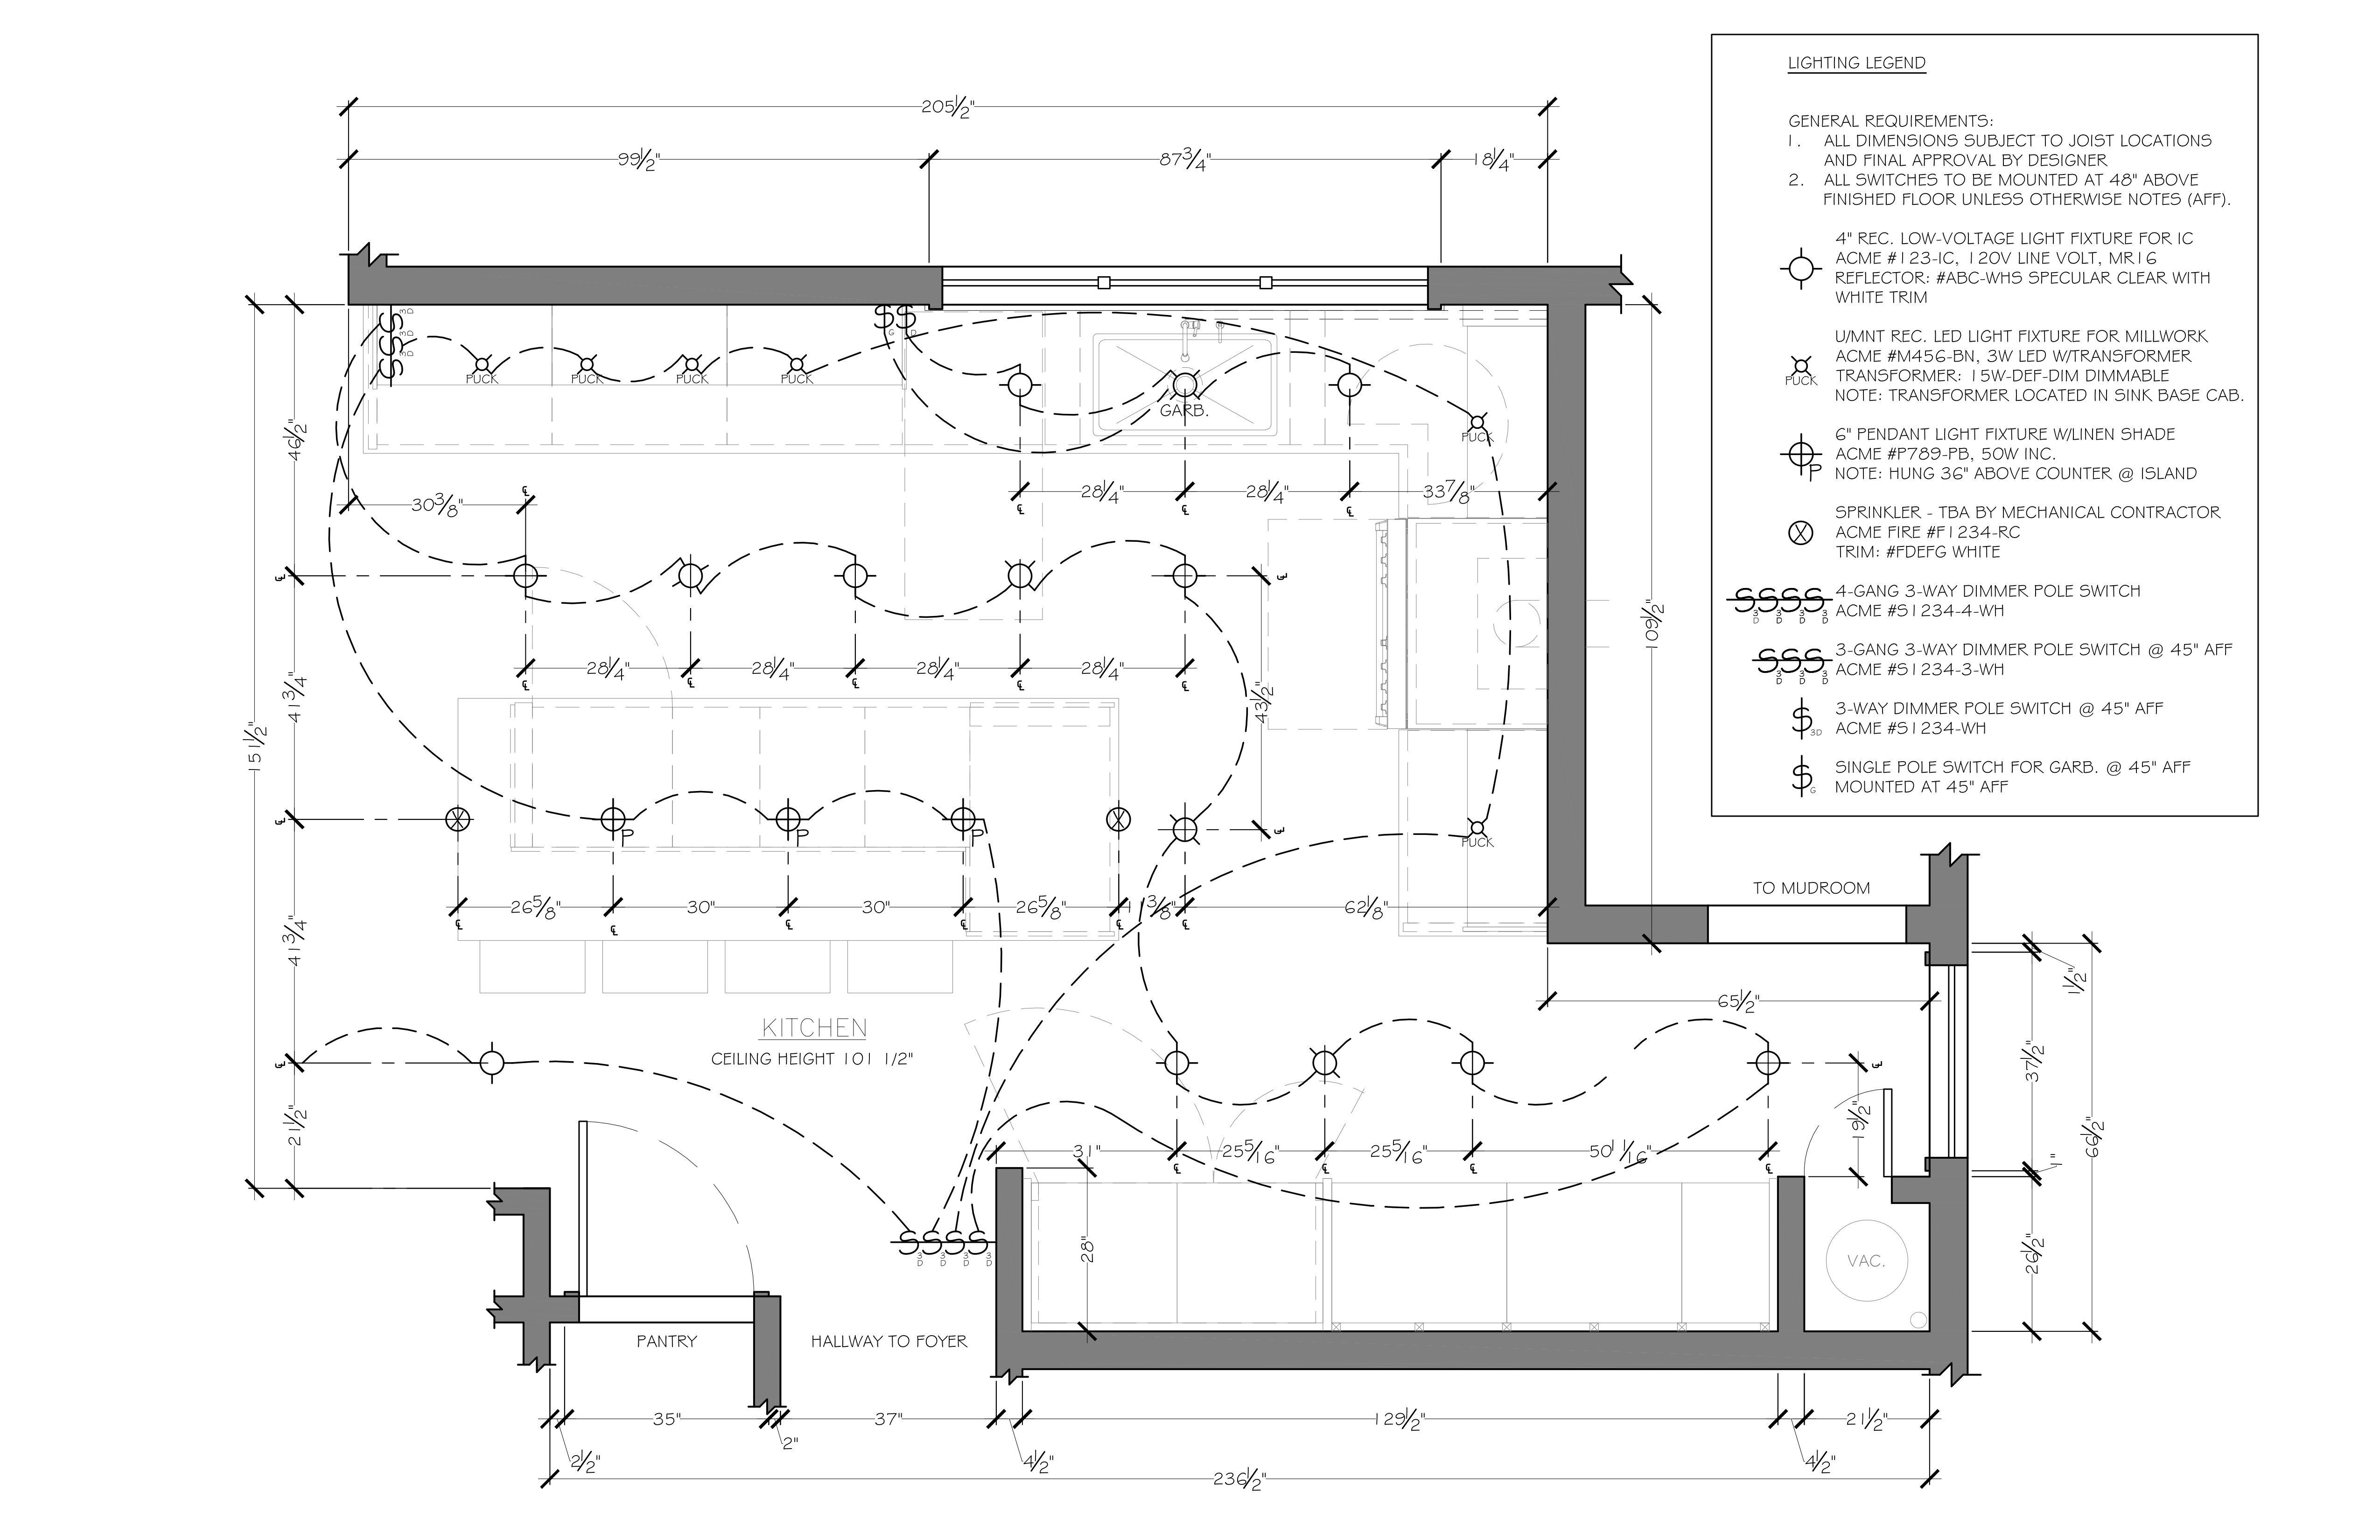 medium resolution of kitchen reflected ceiling plan example c 2013 corey klassen ckd used under permission from the national kitchen bath association